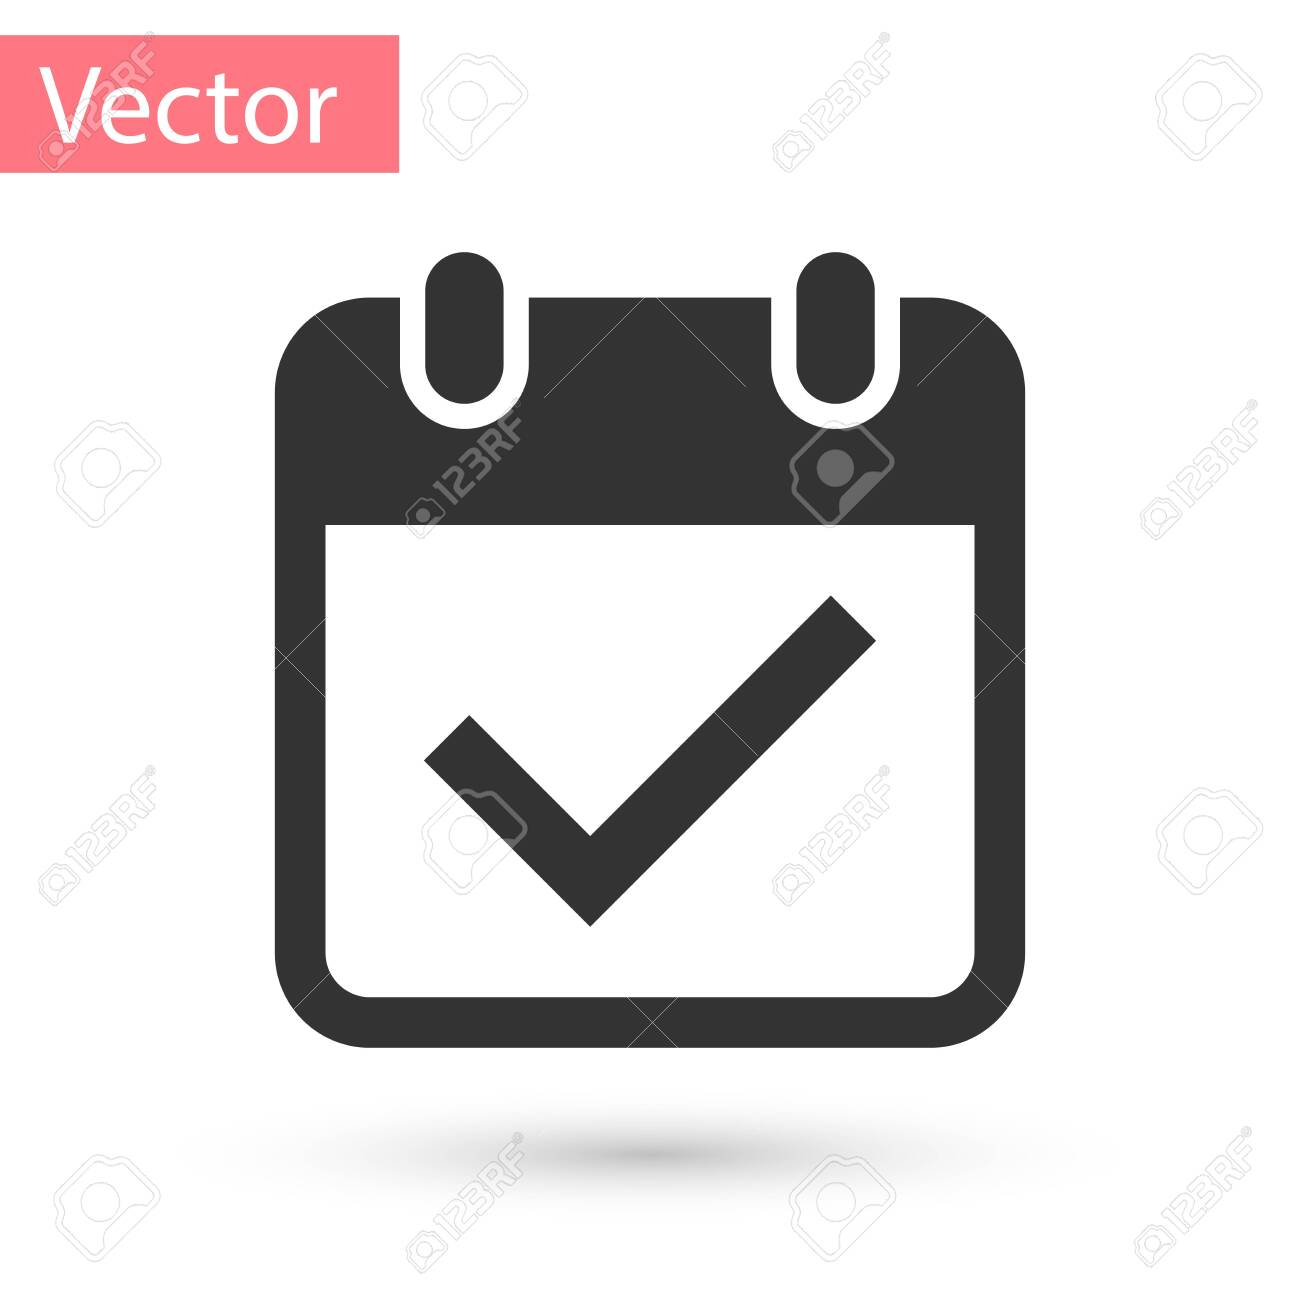 Grey Calendar With Check Mark Icon Isolated On White Background pertaining to Calendar Icon Grey